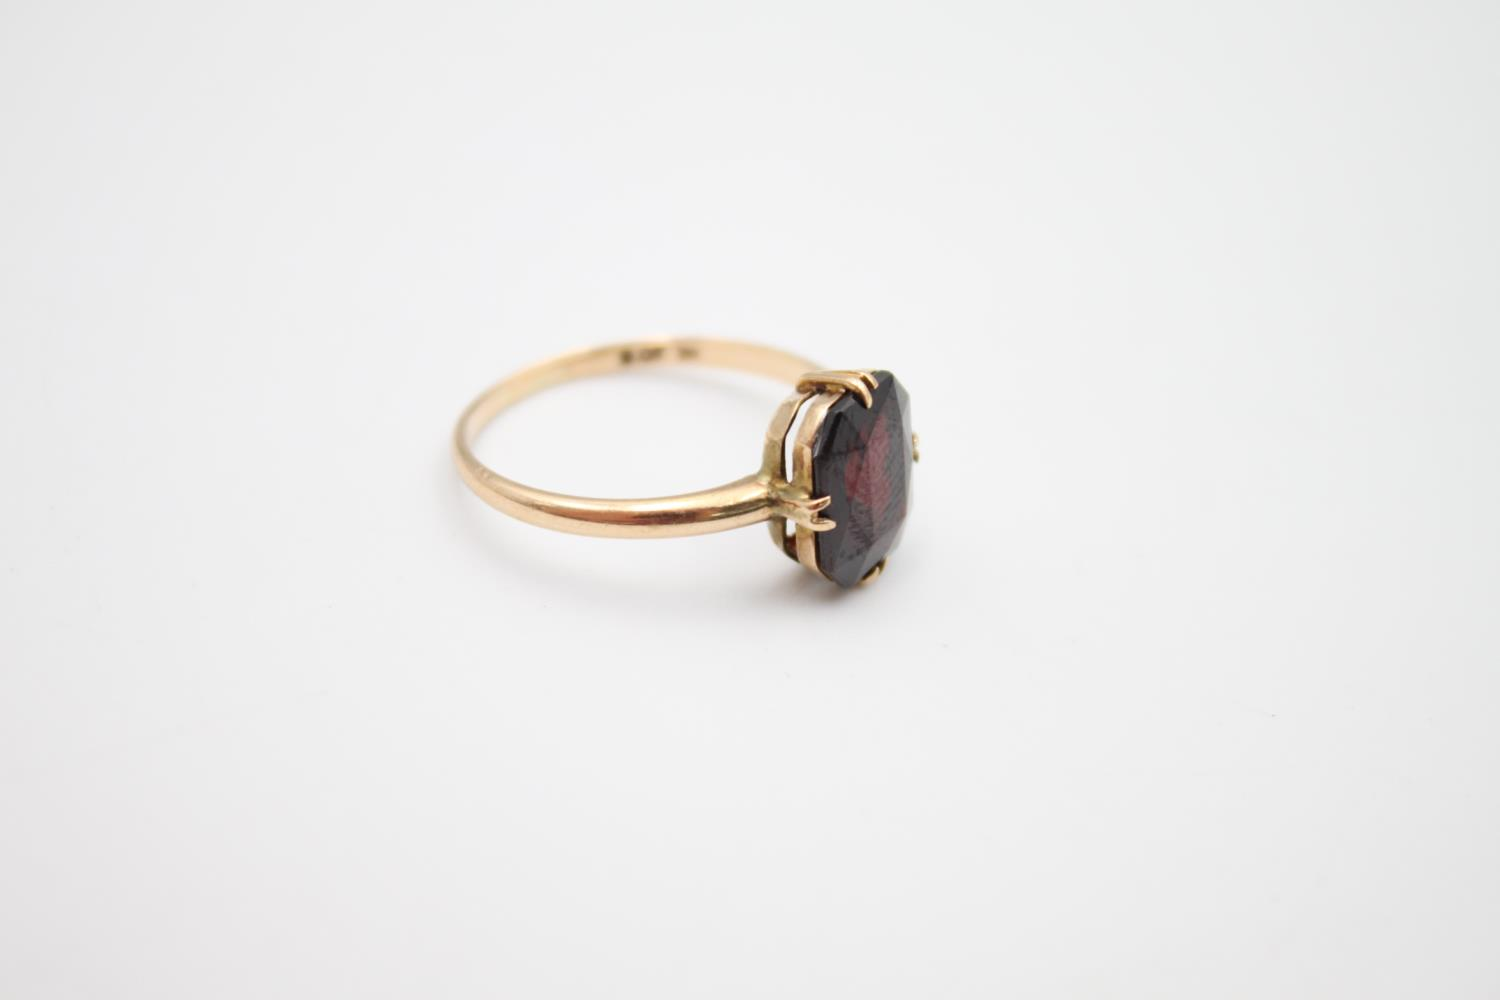 vintage 9ct gold garnet solitaire ring 2.1g Size O - Image 4 of 5